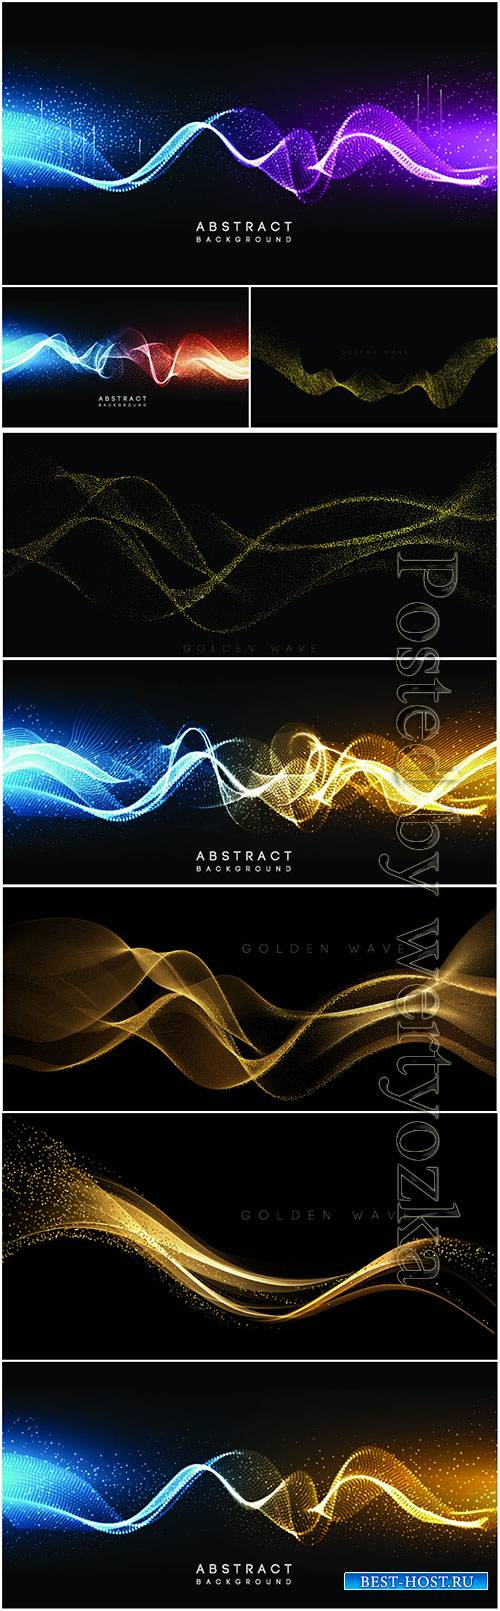 Gold and color waves in vector